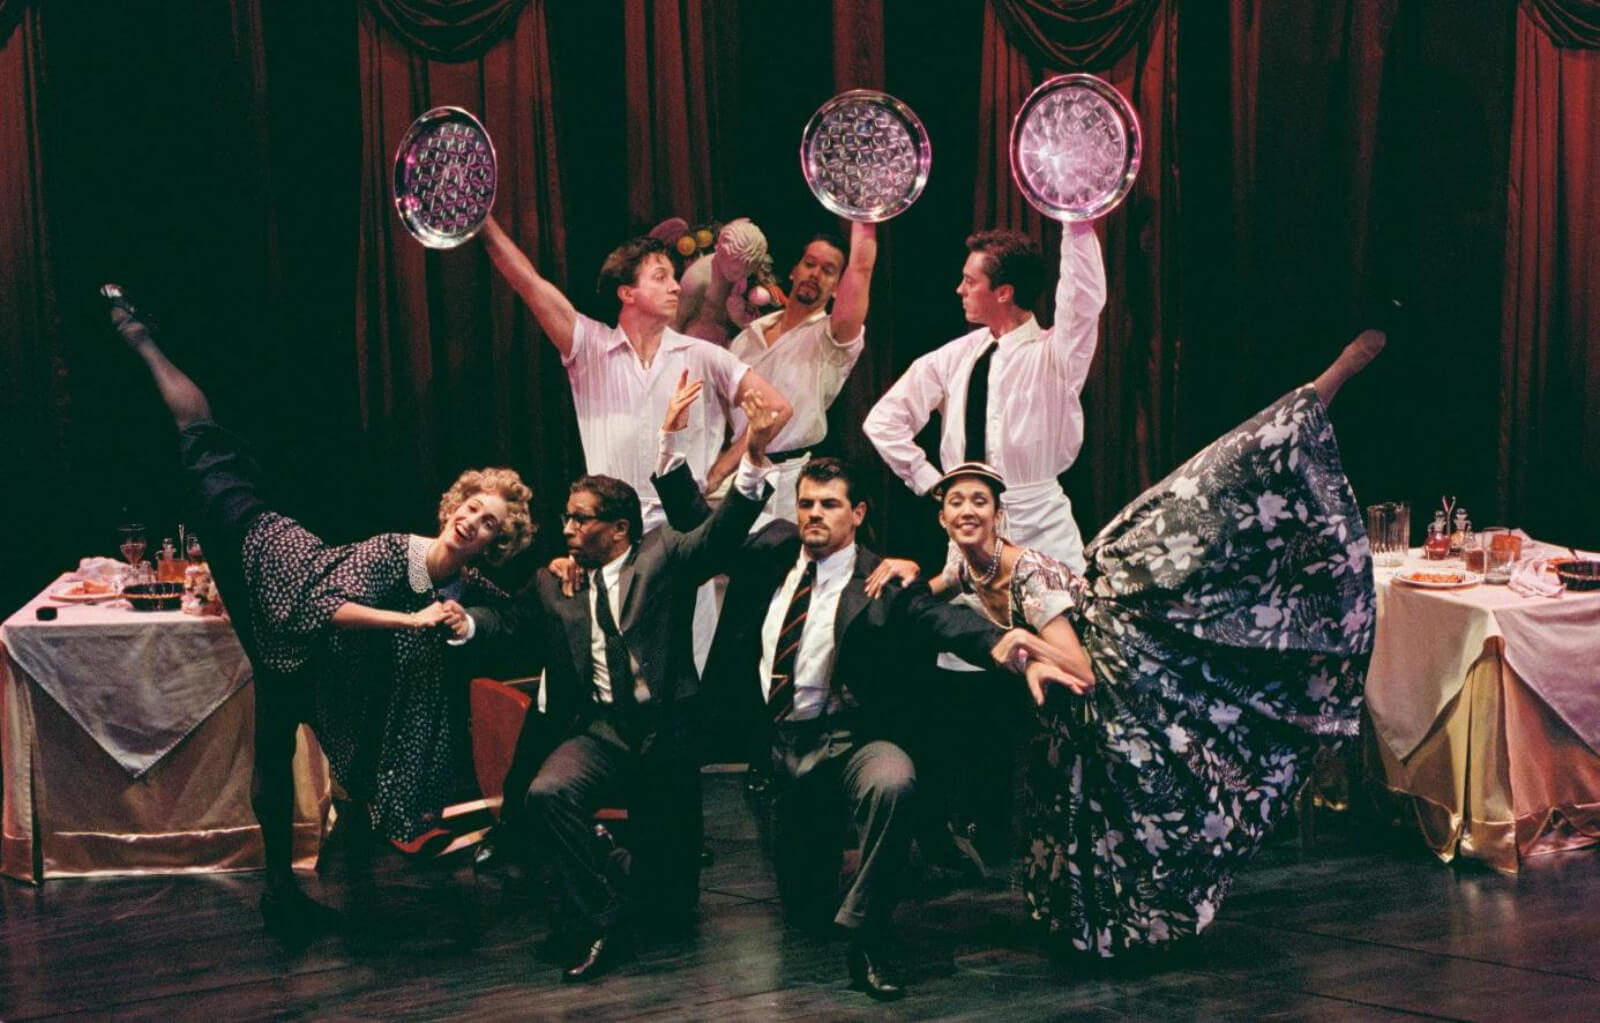 """Nina Goldman, Tomé Cousin, Stacey Todd Holt, Robert Wersinger, Peter Gregus, Scott Taylor, and Dana Stackpole in """"Did You Move?"""" from Contact. They are all dressed like waiters and diners."""